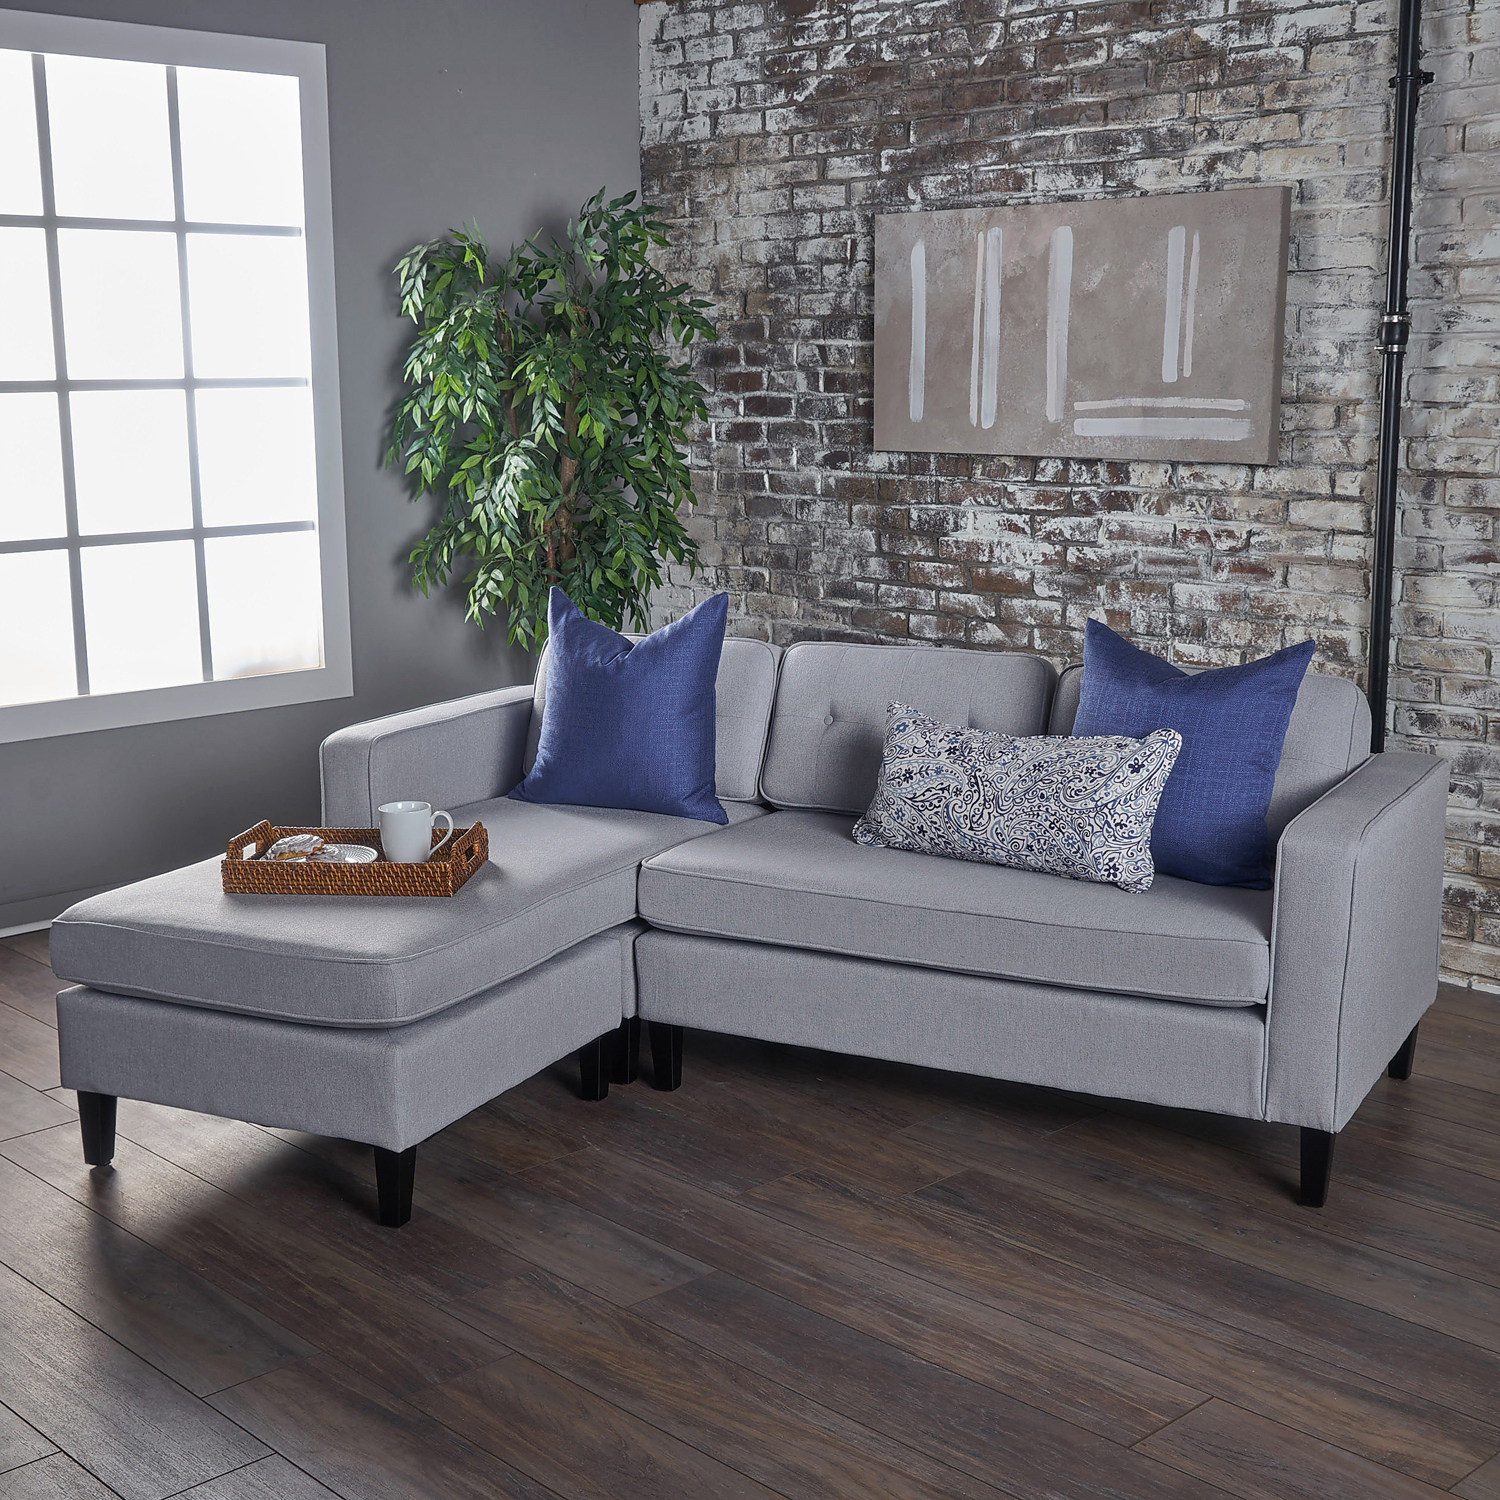 Well Known Light Gray Wilder Chaise Sectional Sofa – Pier1 For Sectional Sofas In Gray (View 4 of 20)